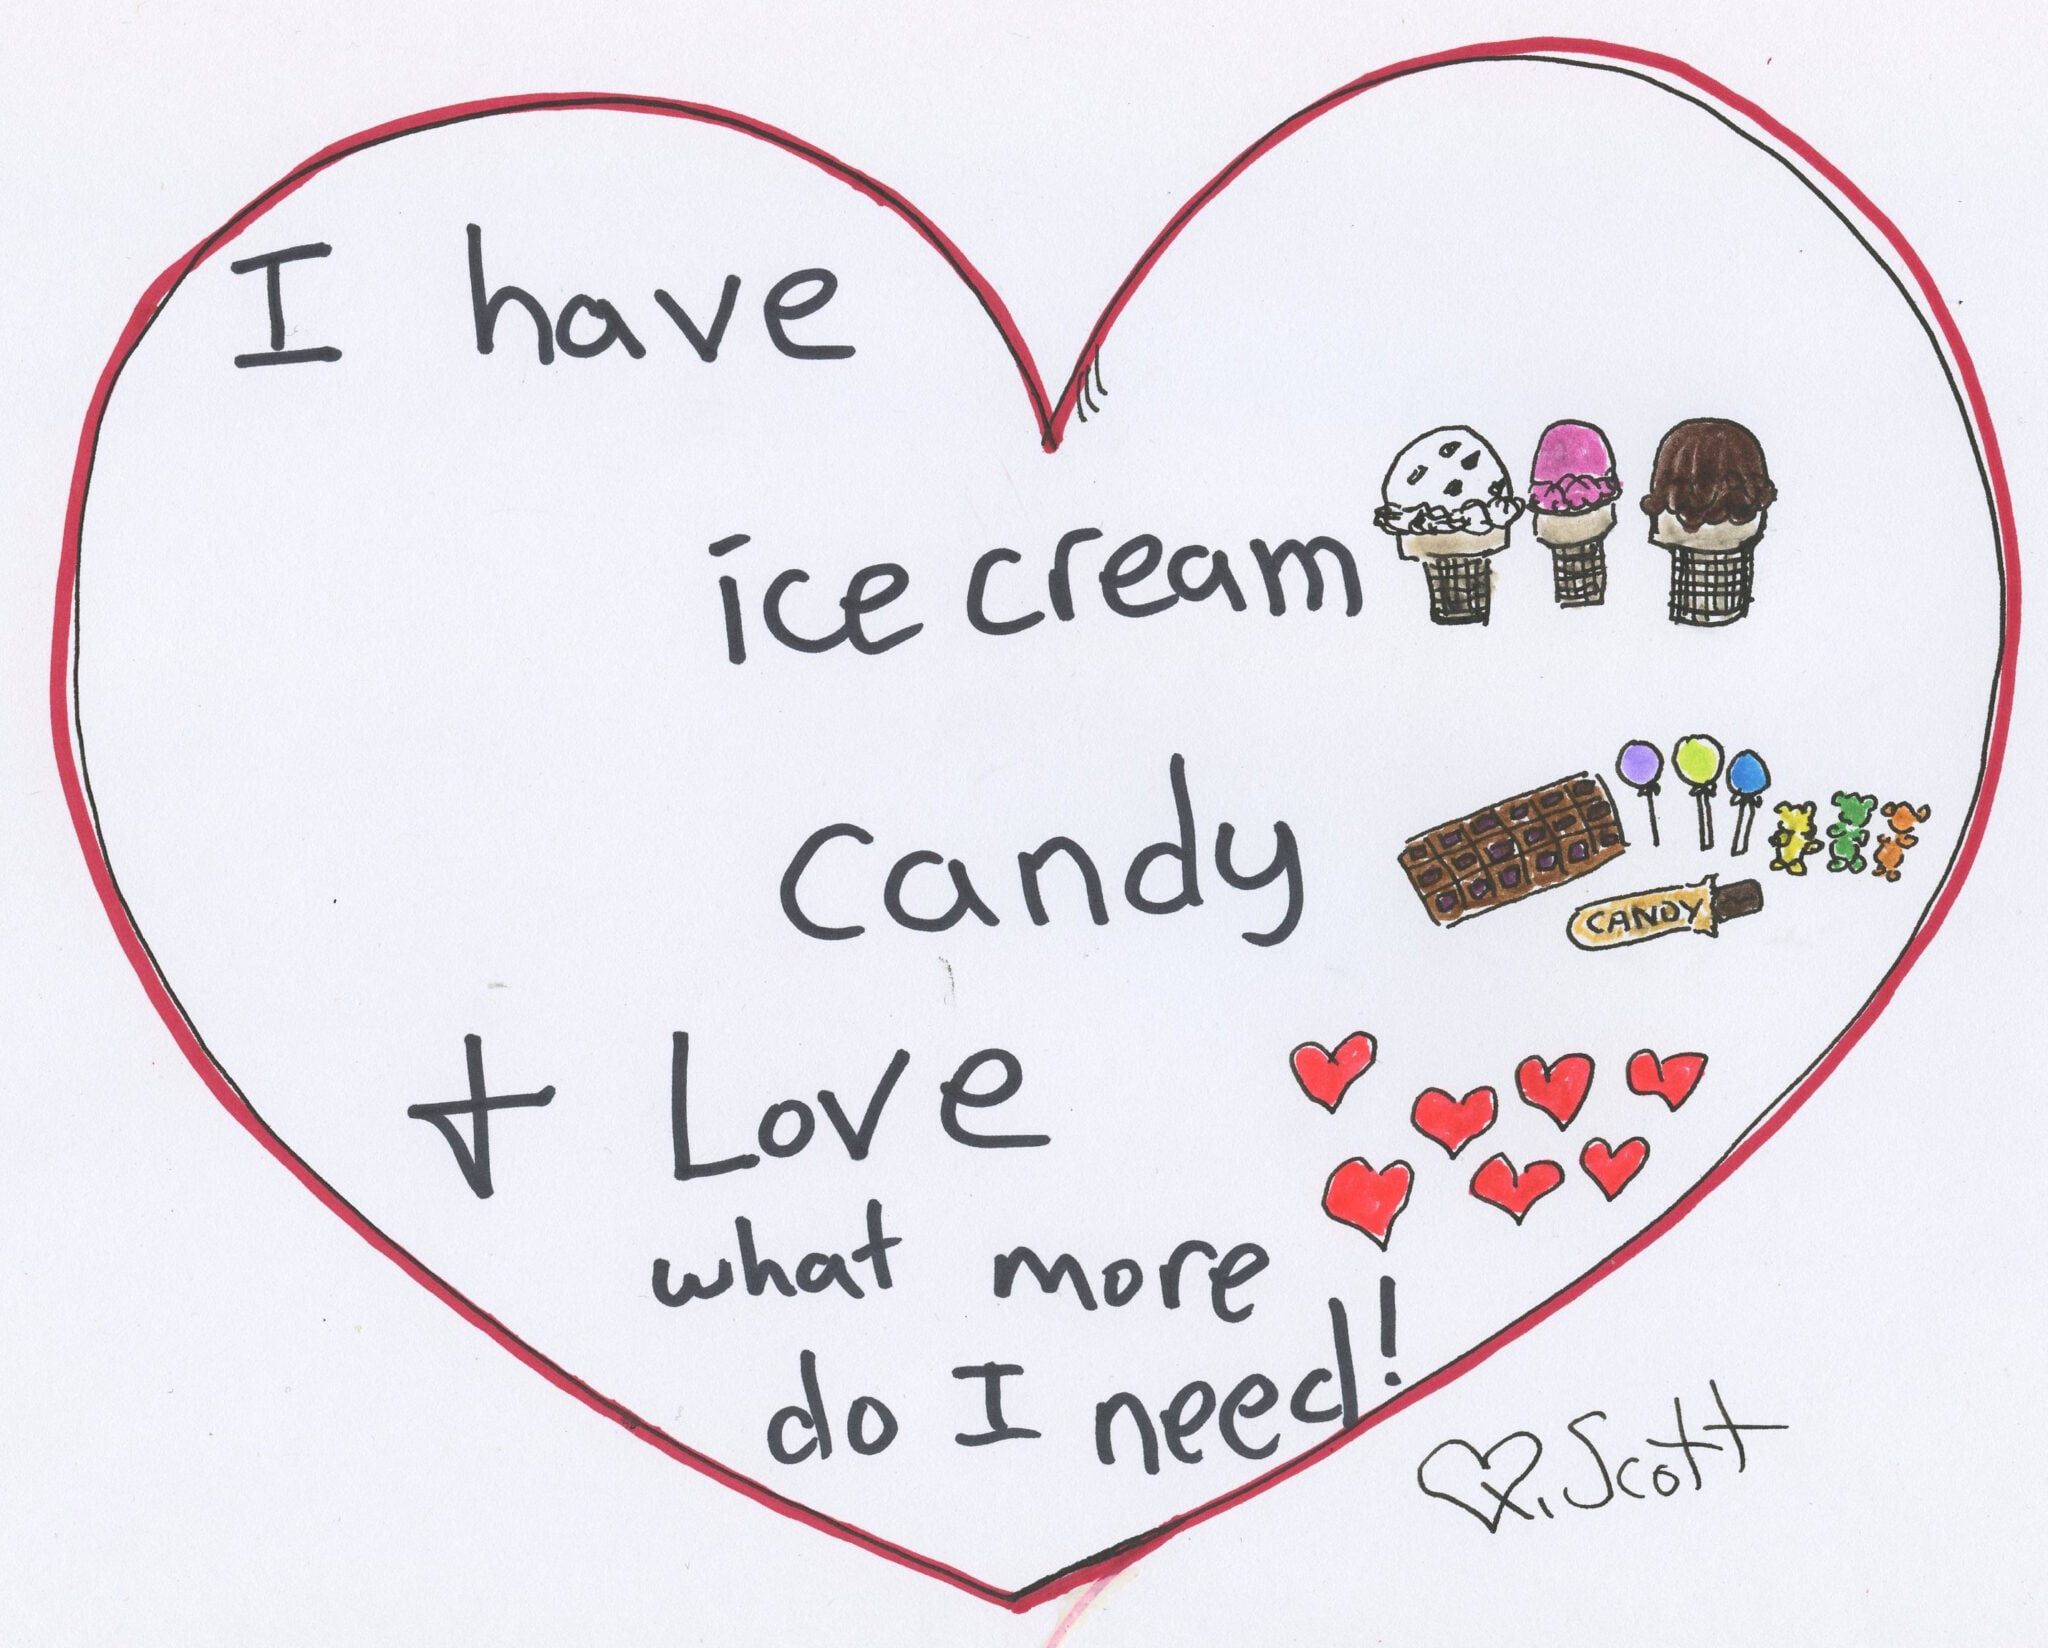 I have ice cream, candy and love. What more do I need!